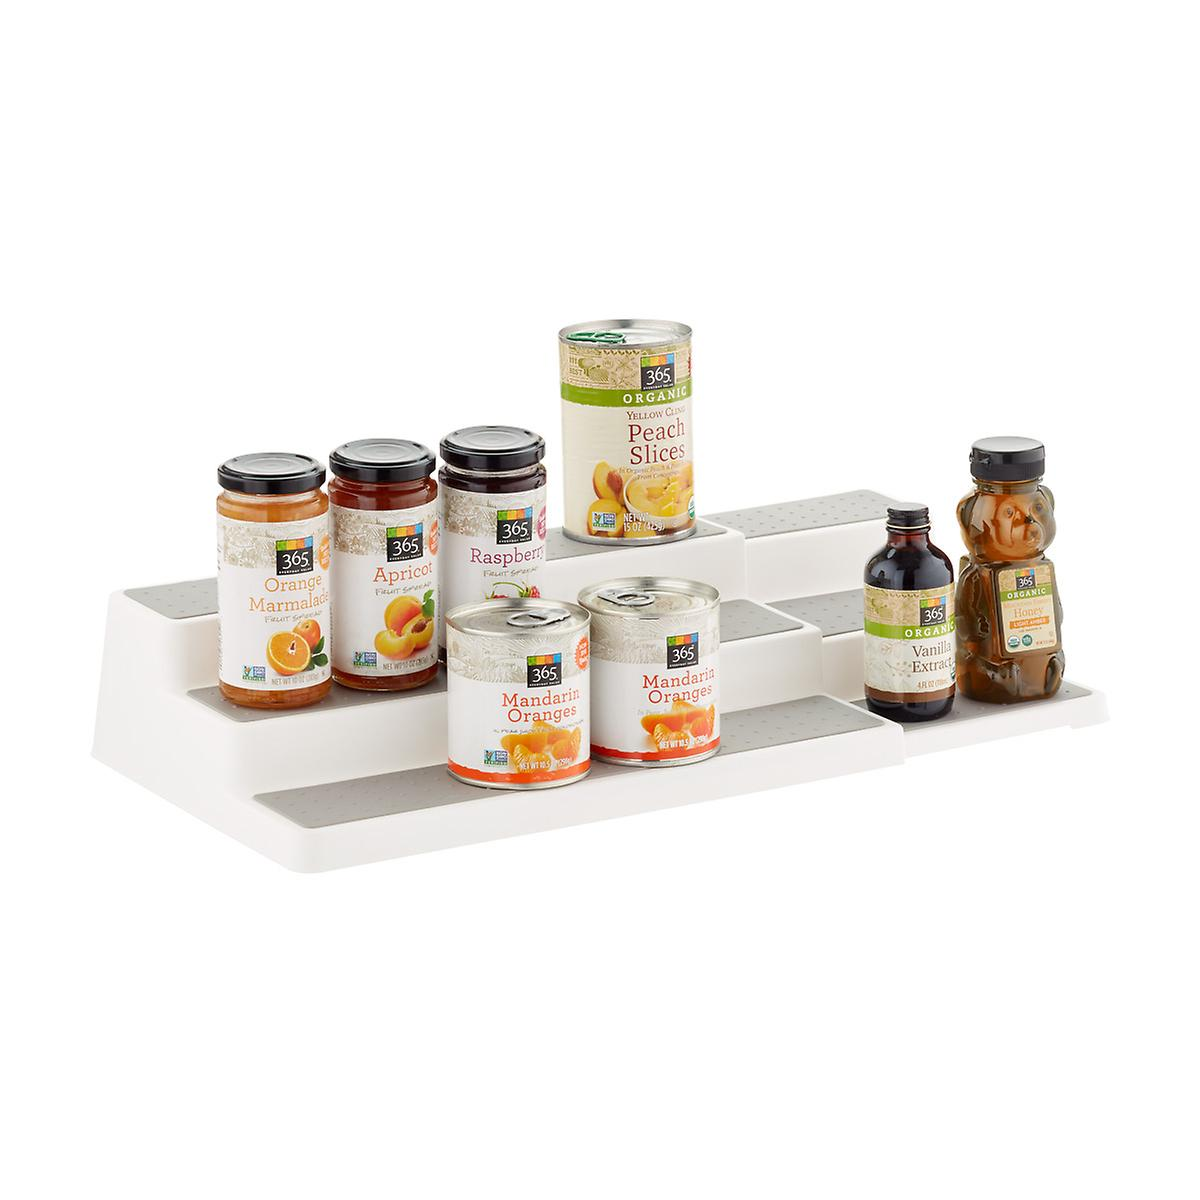 Madesmart Expandable Pantry Shelf Amp Spice Organizer The